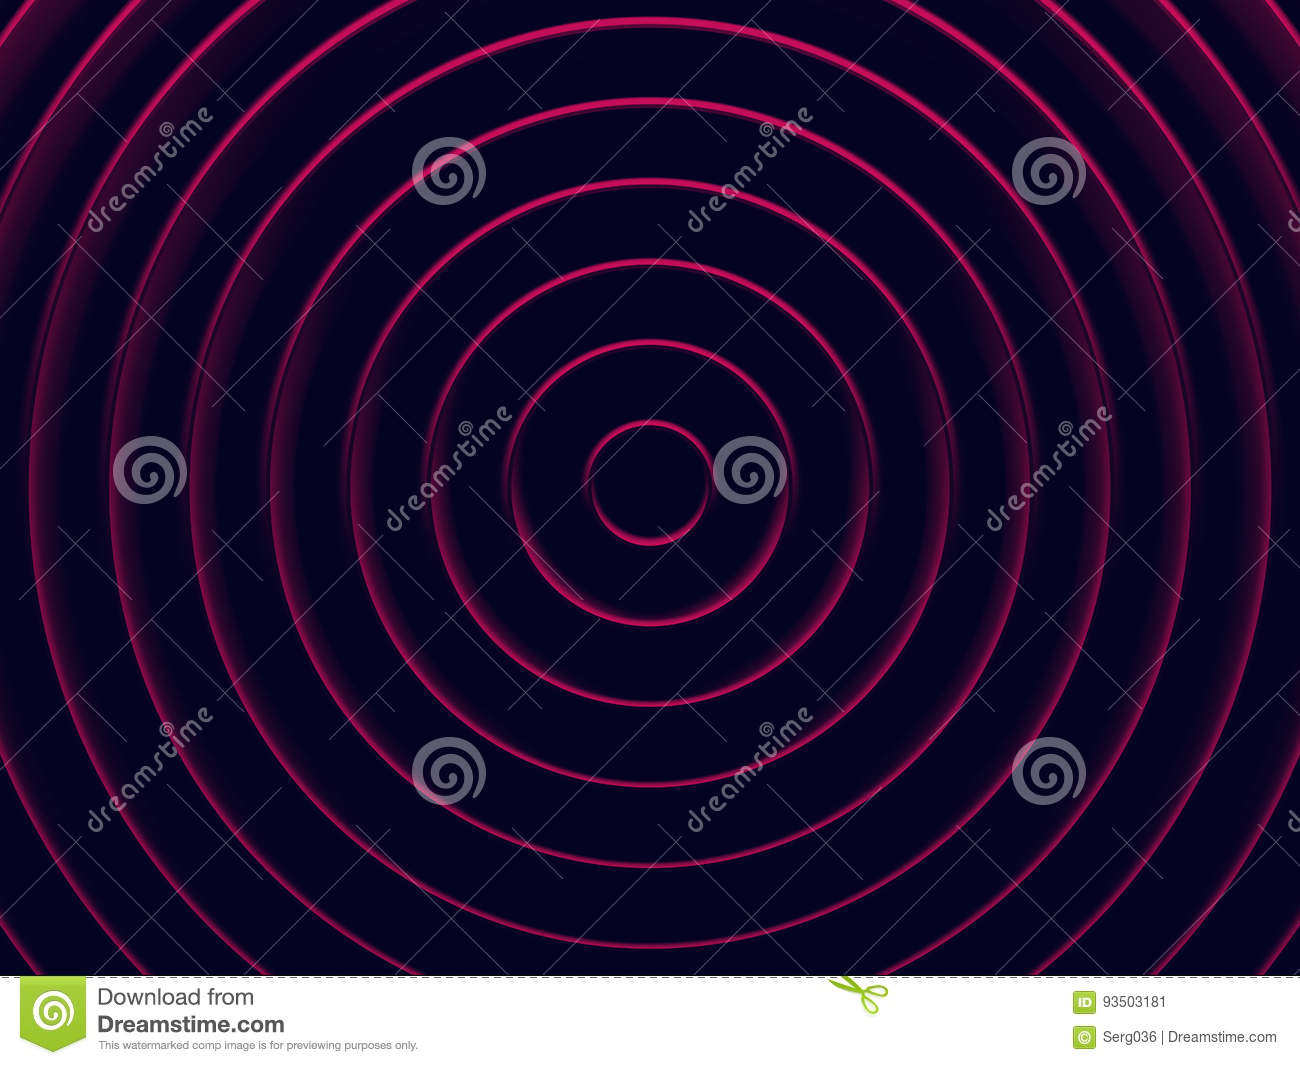 Book Cover Design App : Circular abstract background for graphic stock image